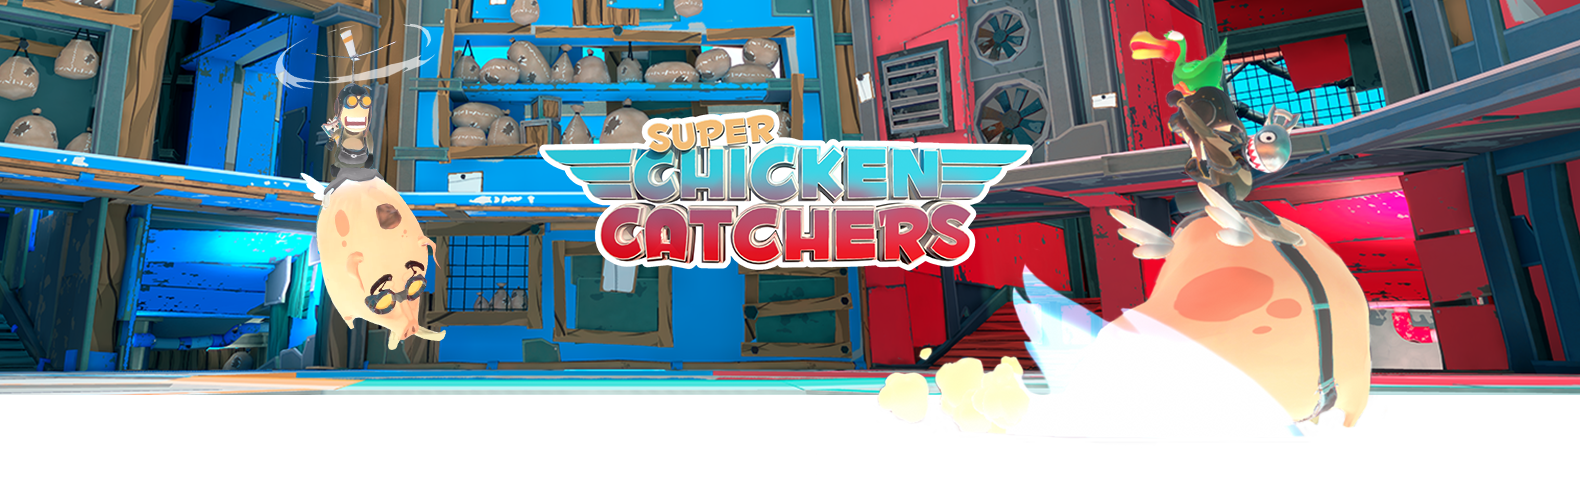 Super Chicken Catchers (old student project version) 2017